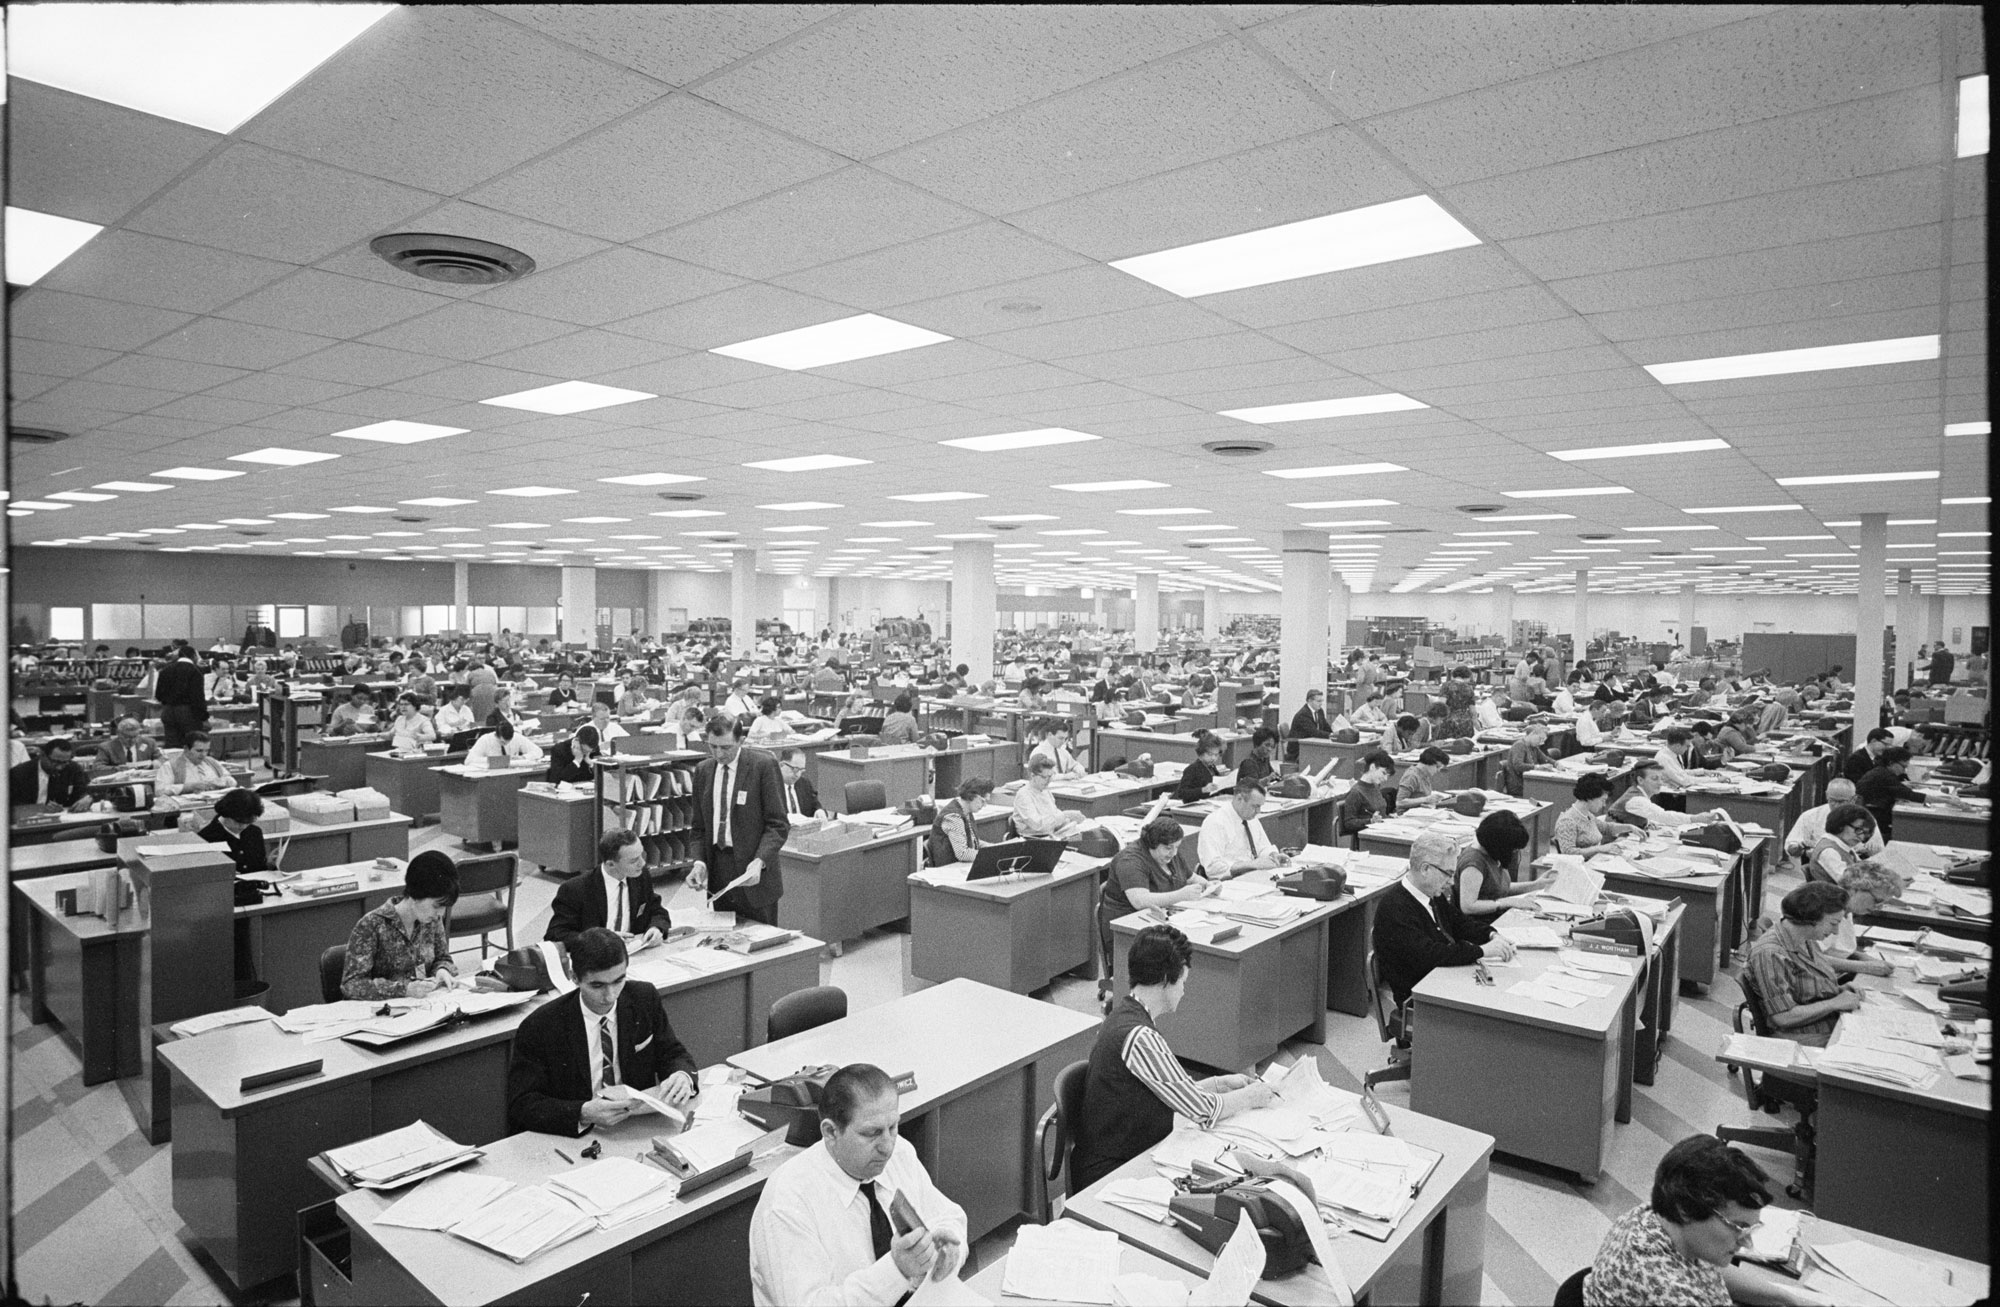 Elevated view of employees as they process tax returns at a regional IRS office, Philadelphia, Pennsylvania, March 11, 1965. (Photo by U S News & World Report Collection/Marion S Trikosko/PhotoQuest/Getty Images)